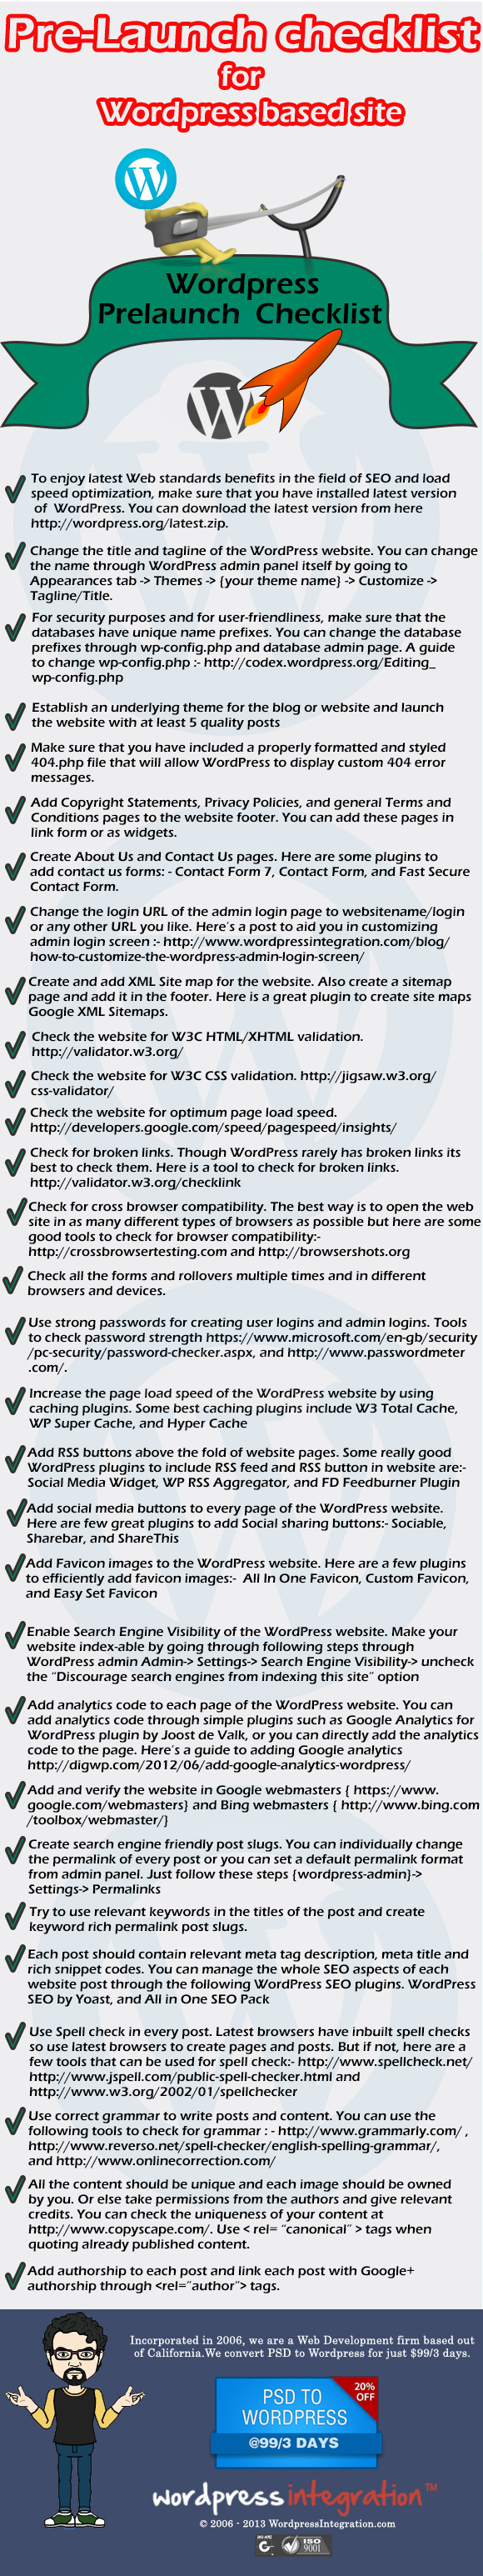 wordpress-prelaunch-checklist-infographic